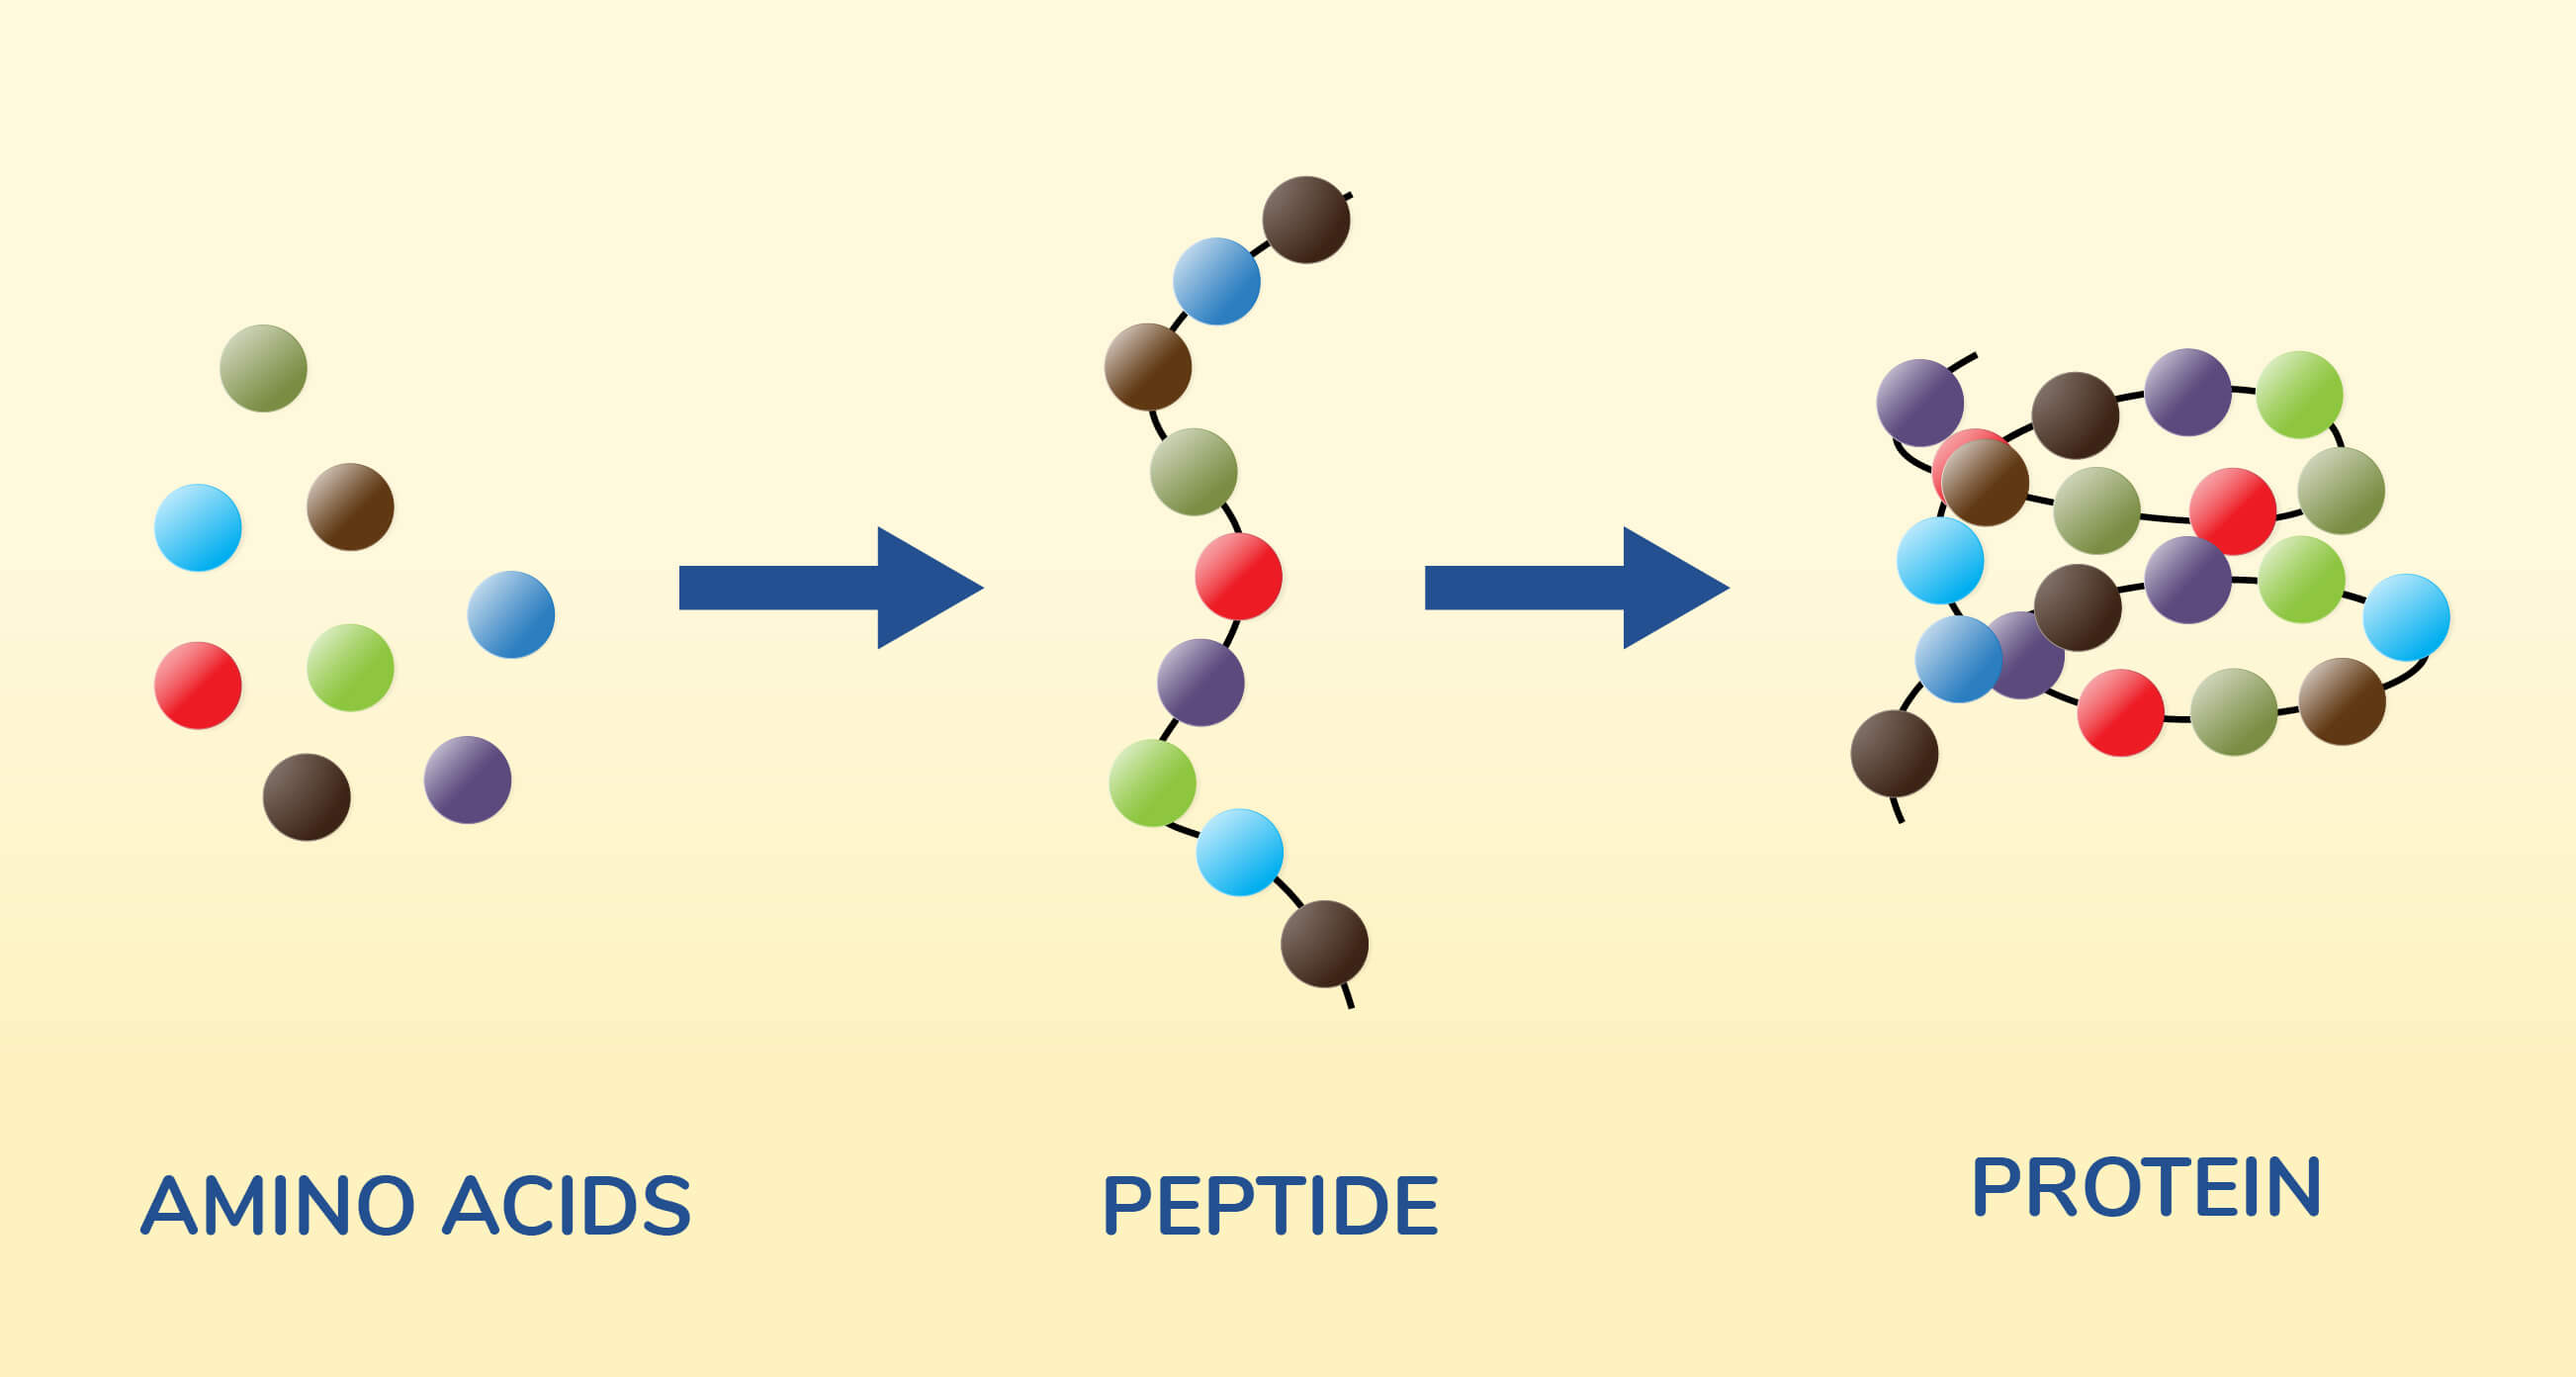 Infographic on amino acids and peptides